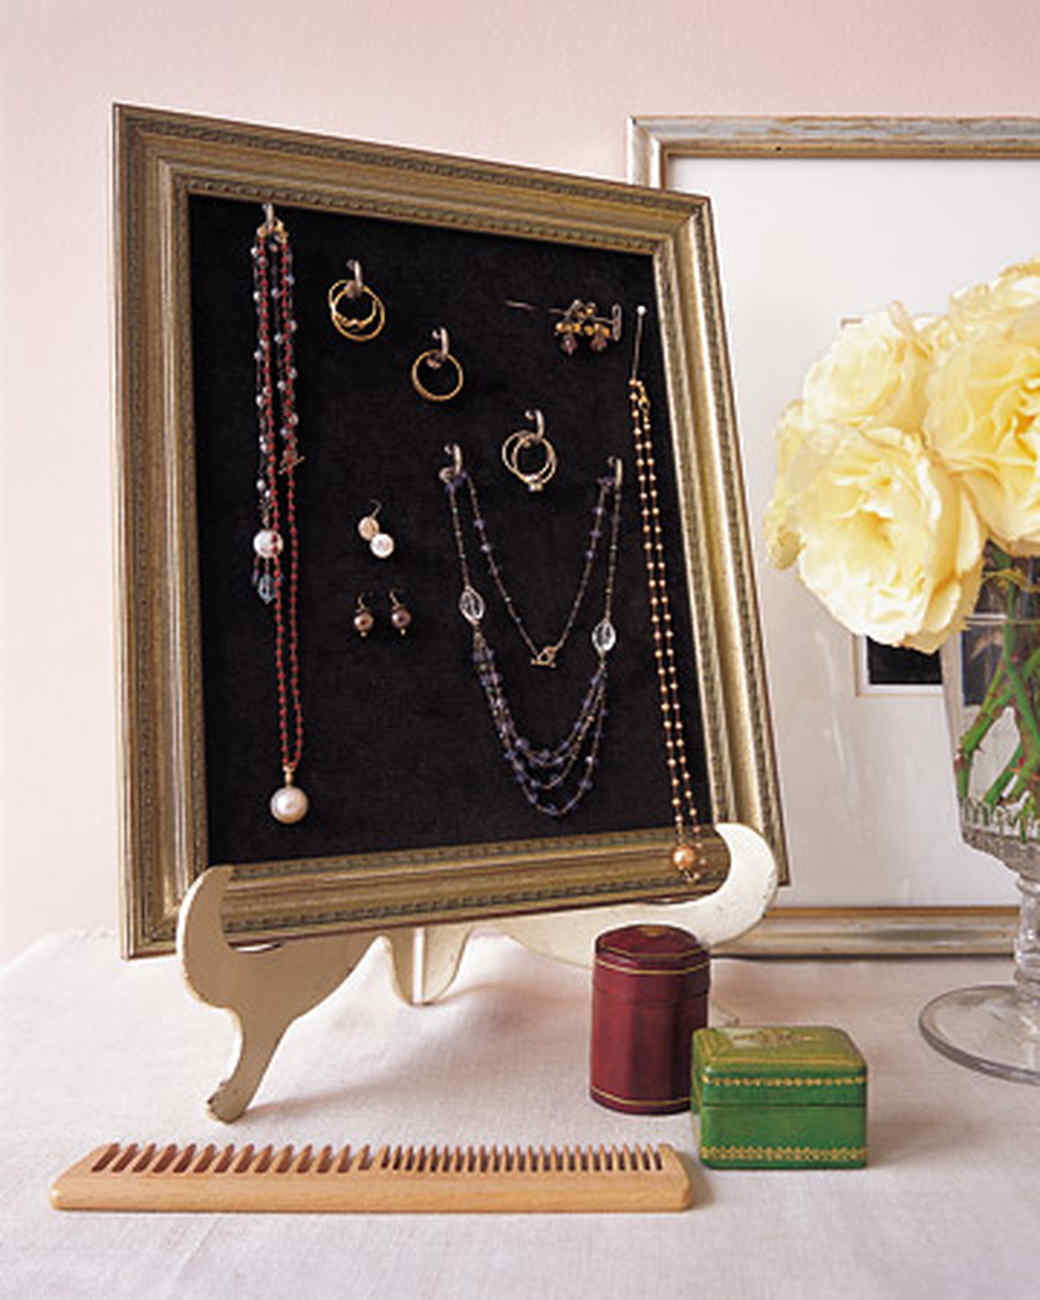 Diy jewelry storage frame your treasures martha stewart jeuxipadfo Image collections